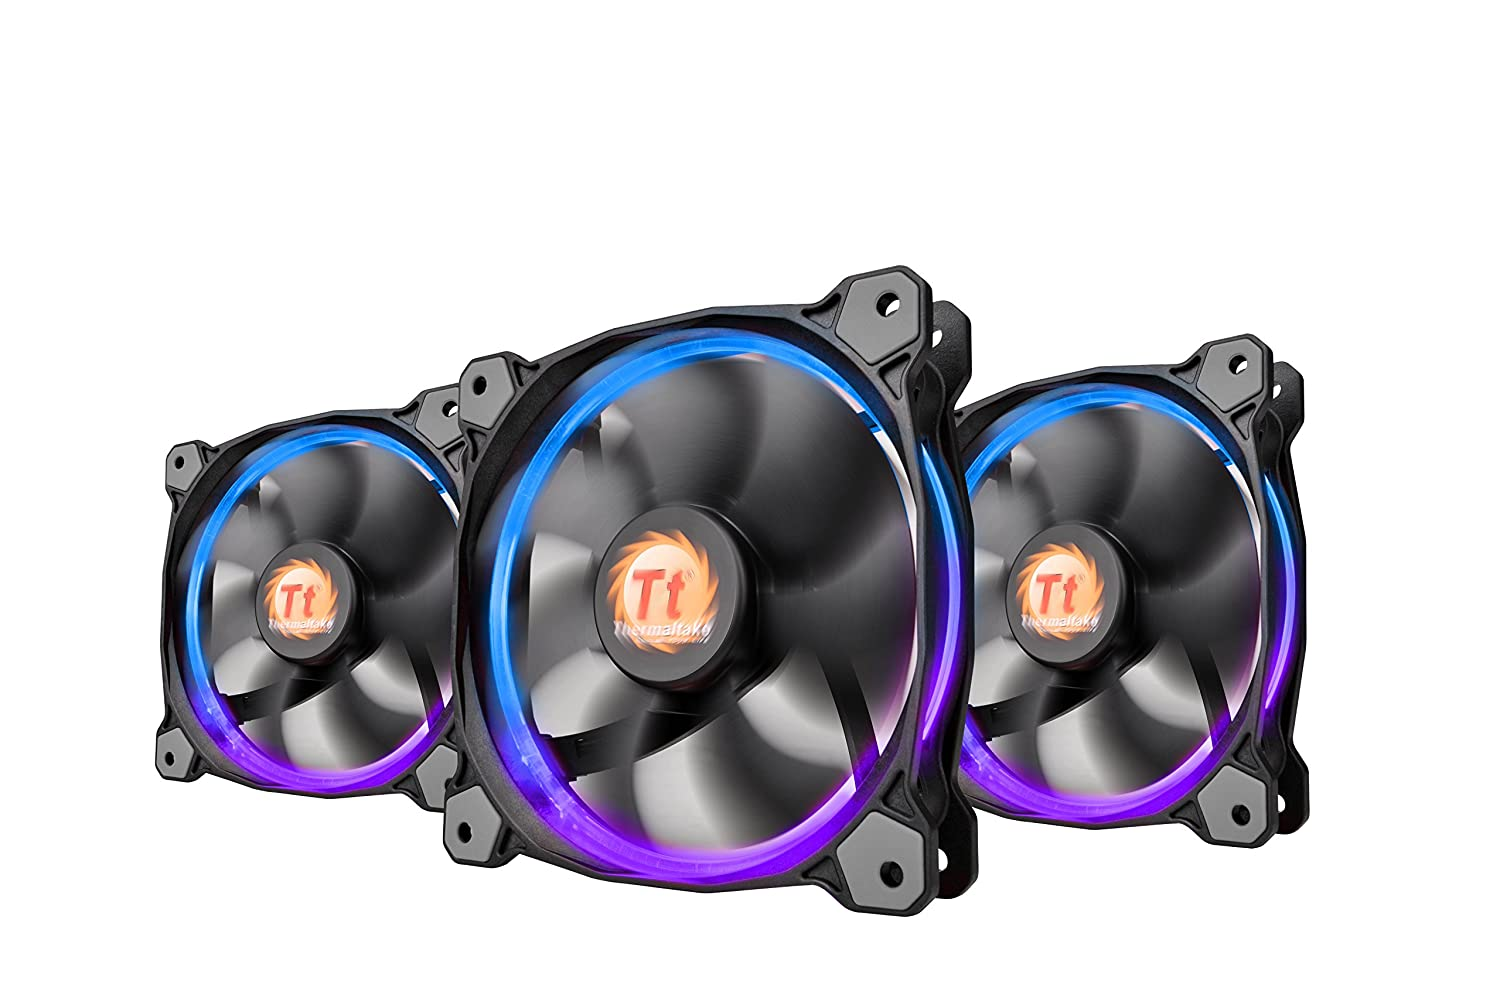 Thermaltake Riing 12 Rgb Led 120mm High Static Pressure The Tricolor Leds Can Be Mounted In Three Ways Through Adjustable Color Case Radiator Fan With Anti Vibration Mounting System Cooling